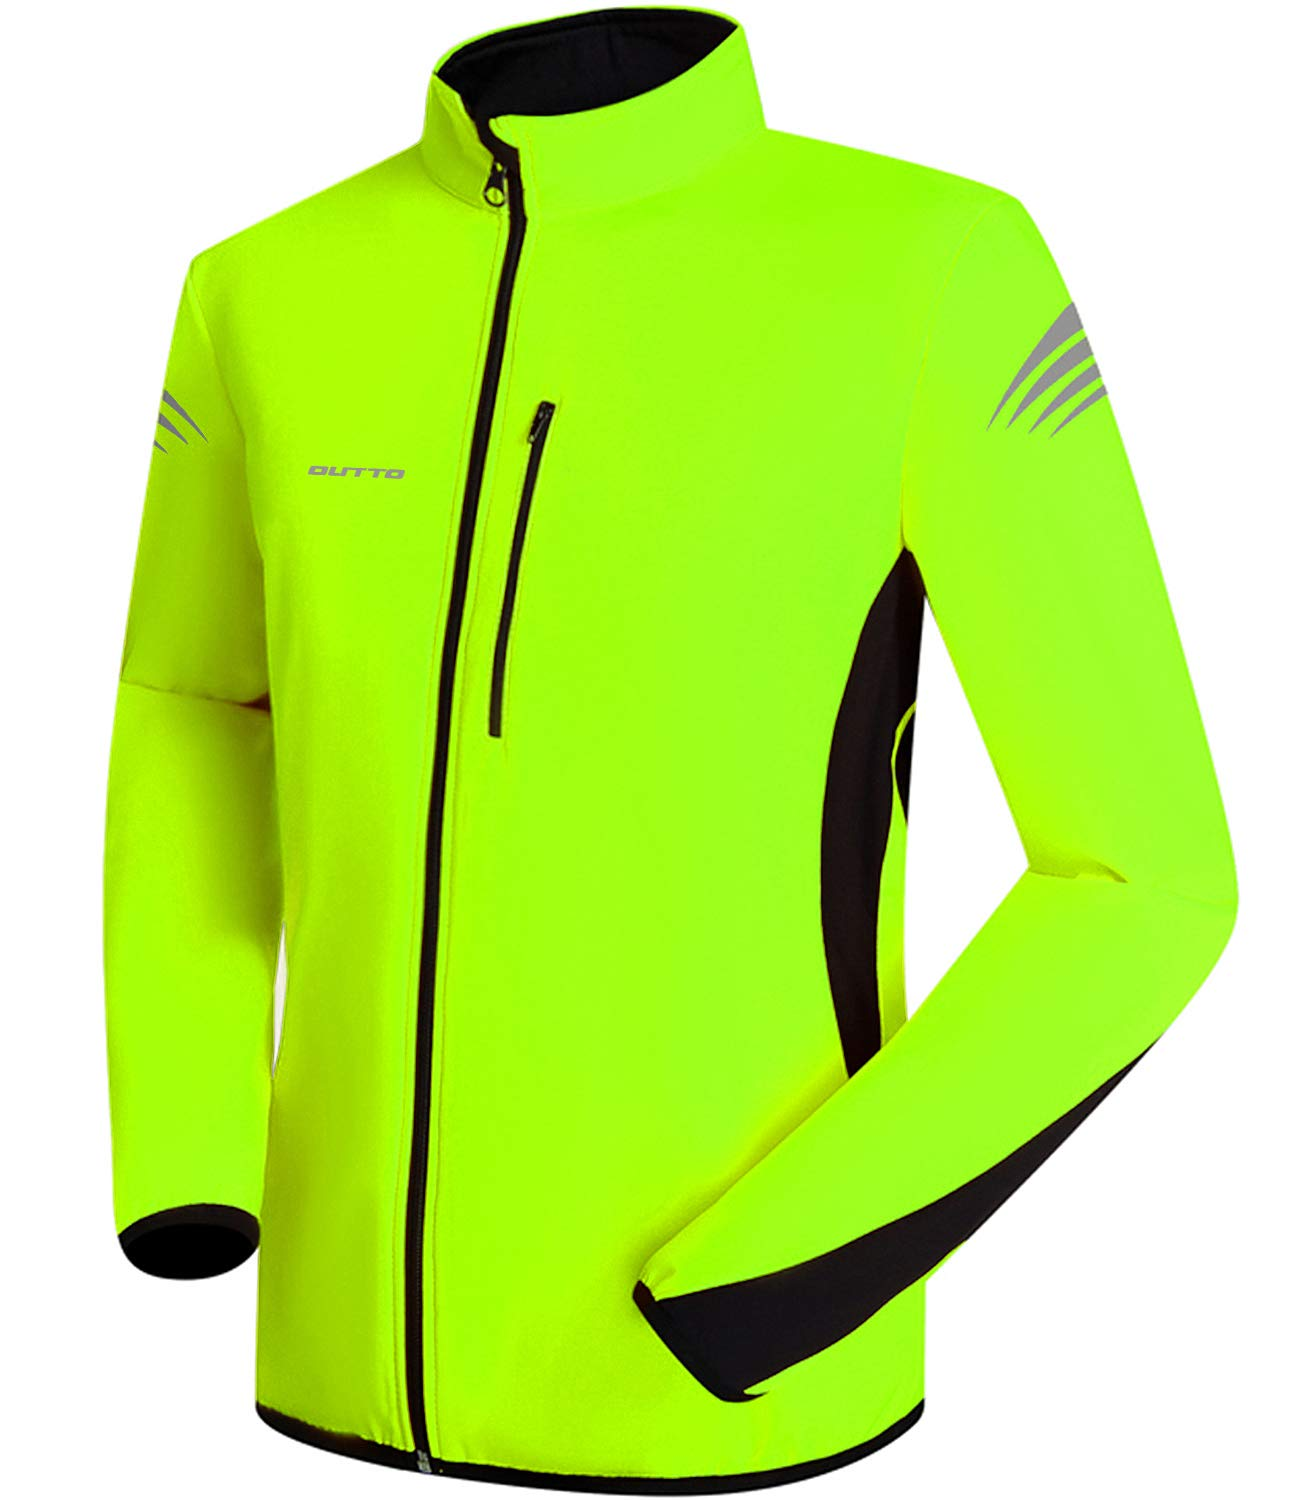 OUTTO Men's Winter Thermal Cycling Jacket Reflective Water Resistant Windbreaker(XXX-Large, 16001 Fluorescent Green) by OUTTO